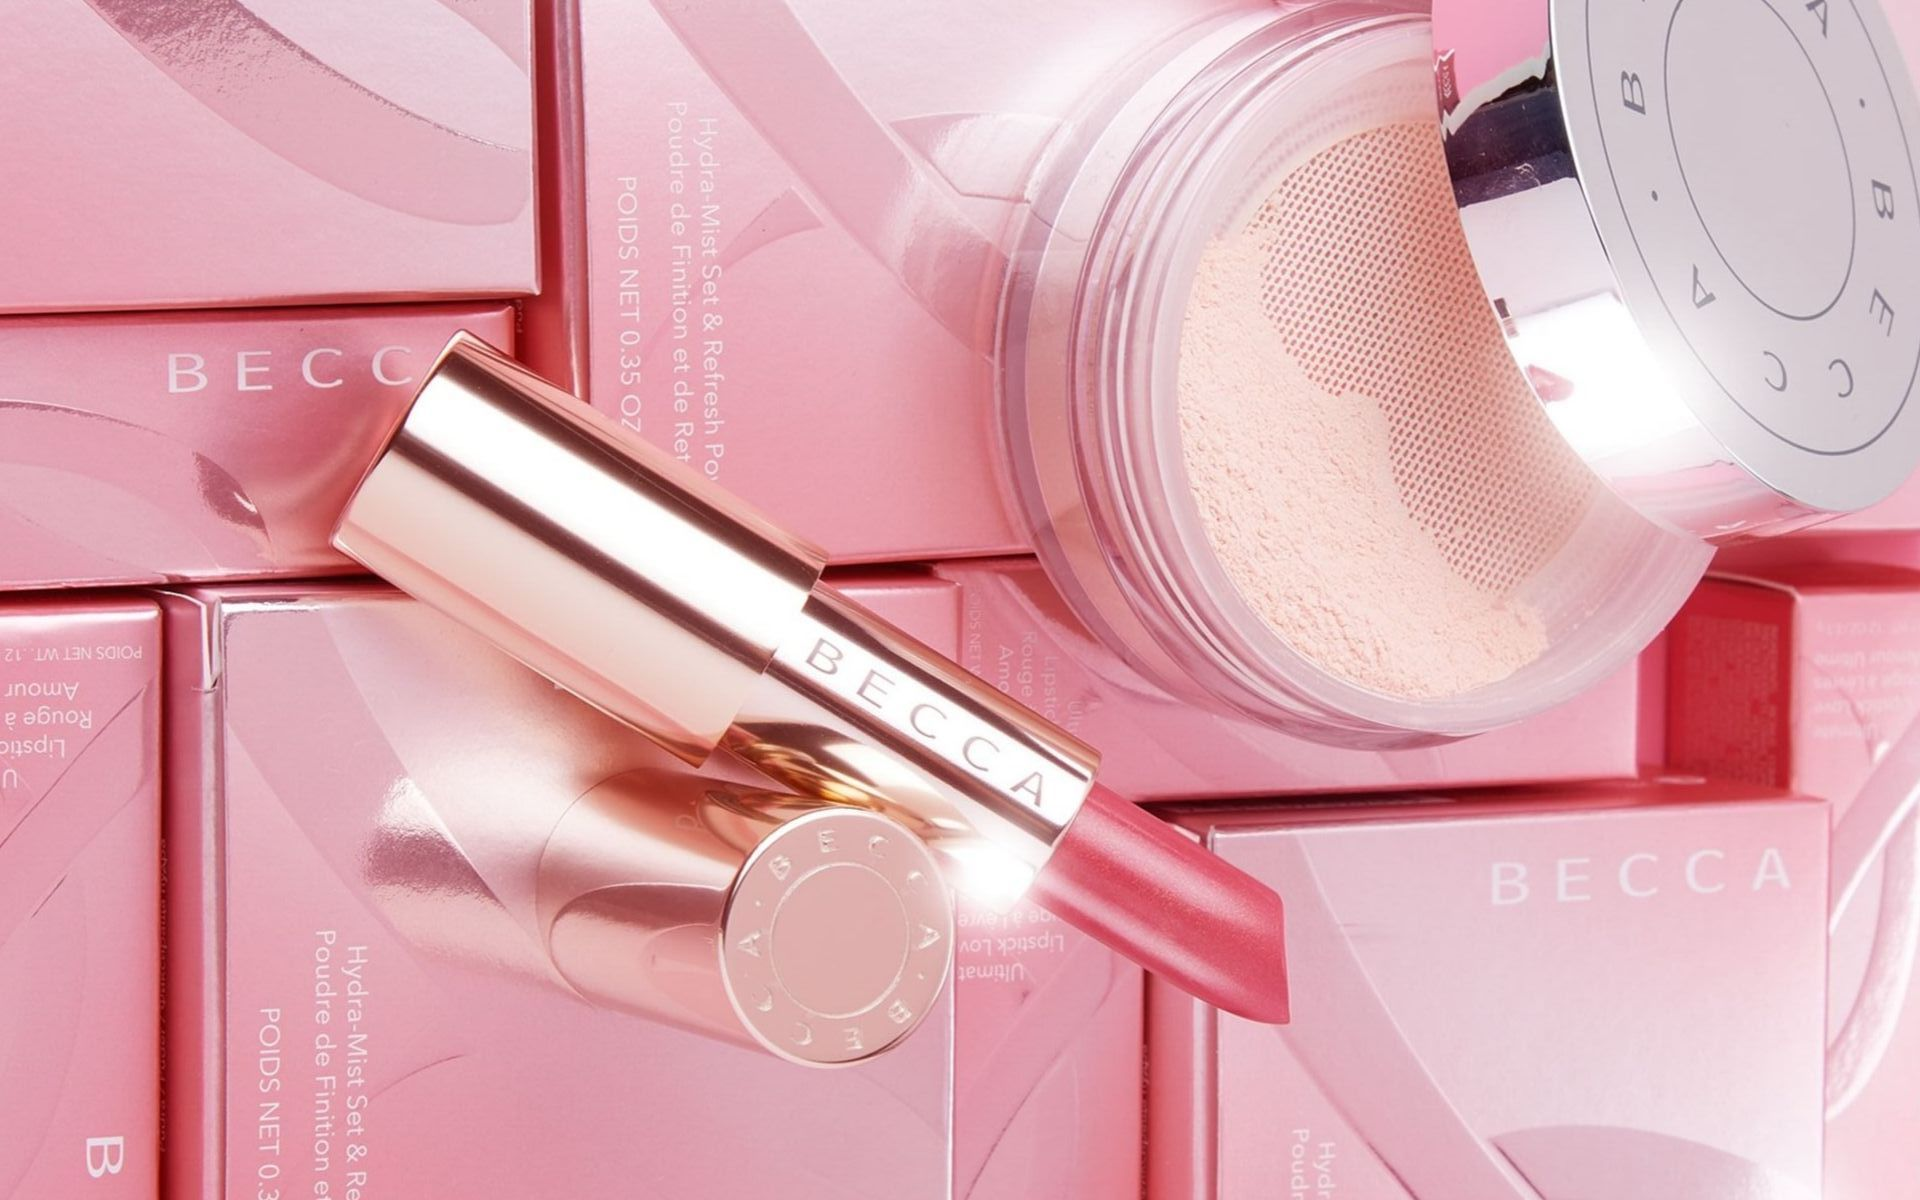 Photo: Becca Cosmetics